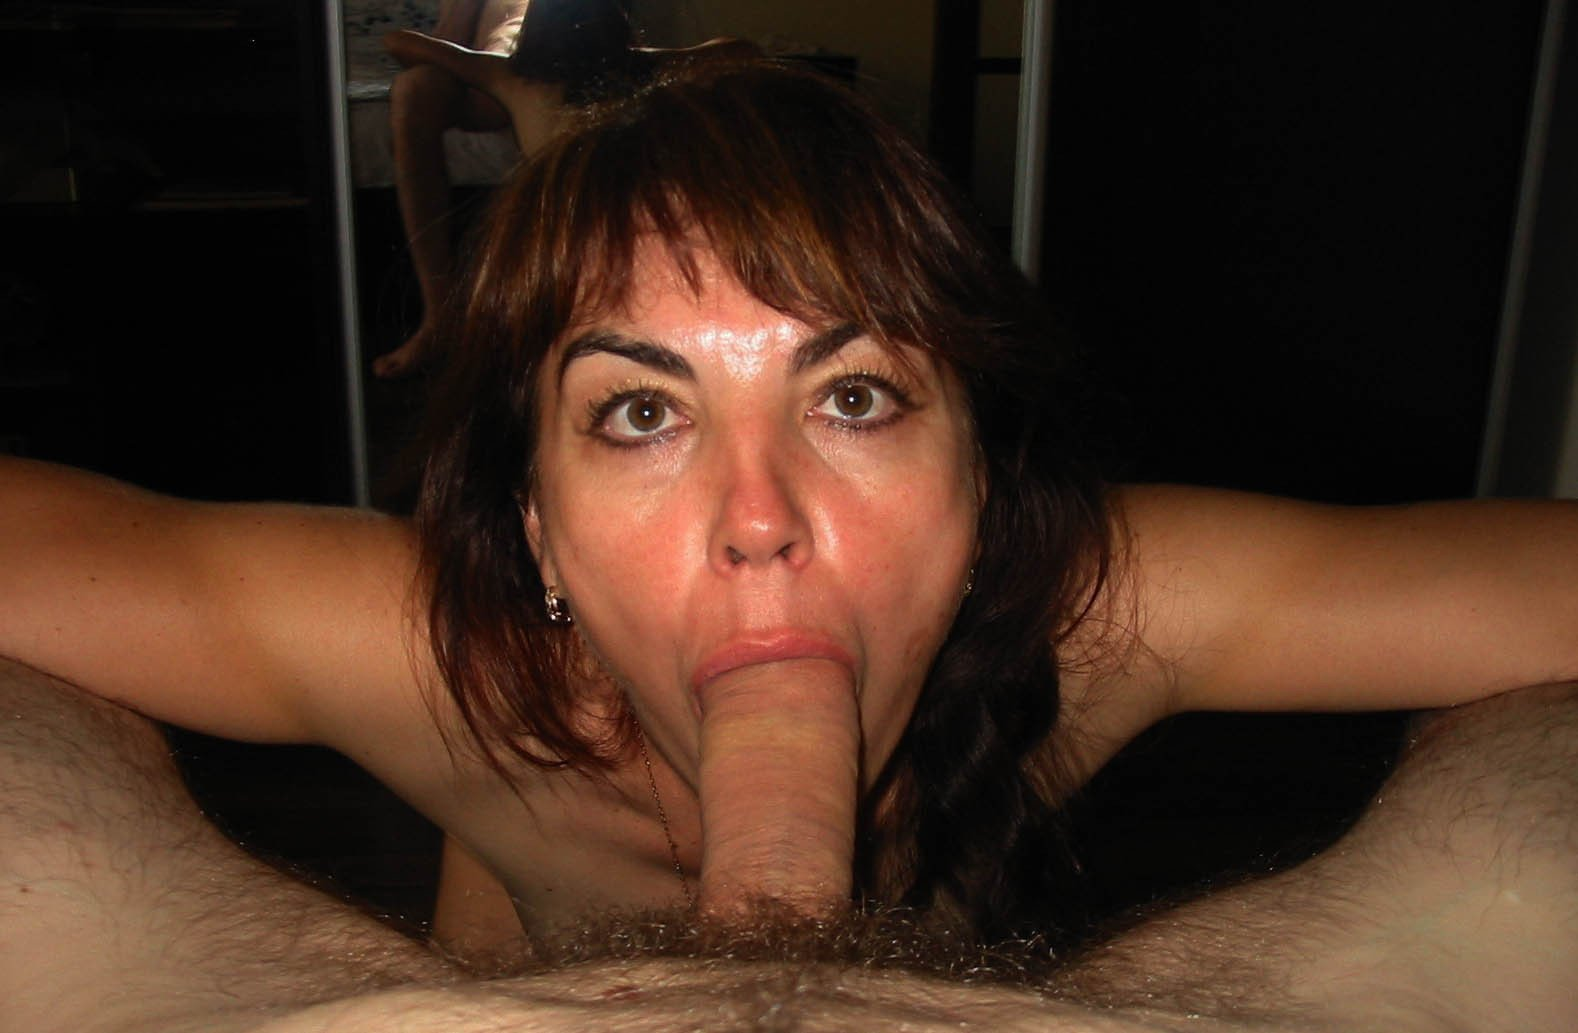 Amateur mature women and black cock